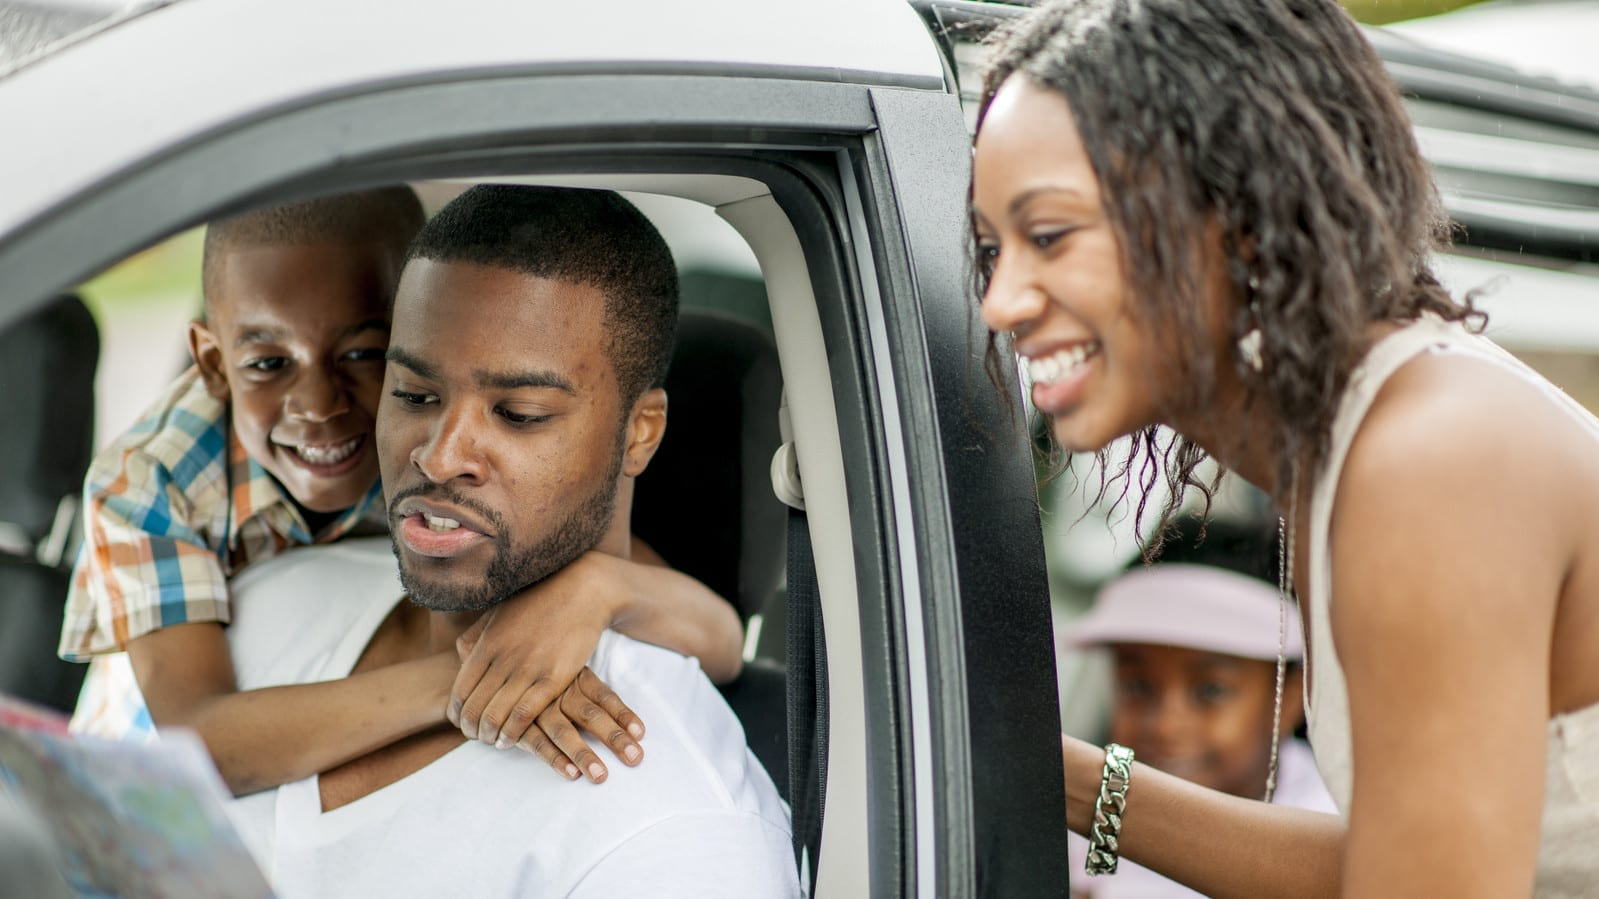 Family Preparing For Road Trip Stock Photo